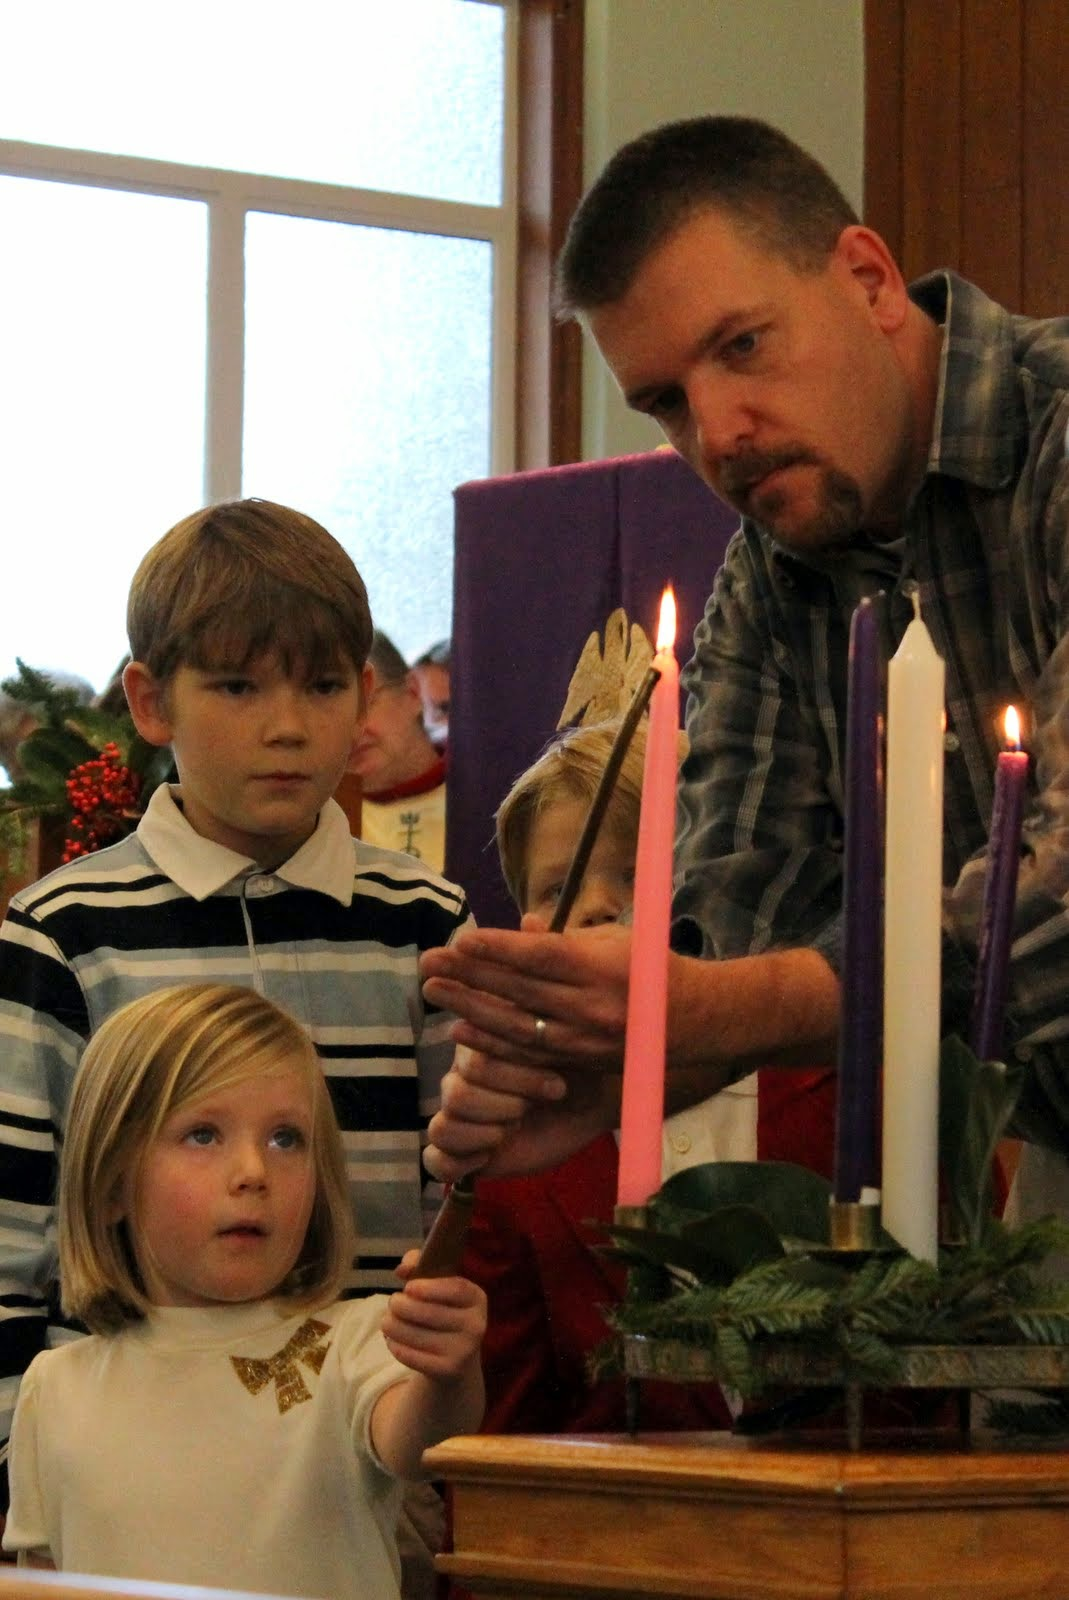 Family lights advent candles